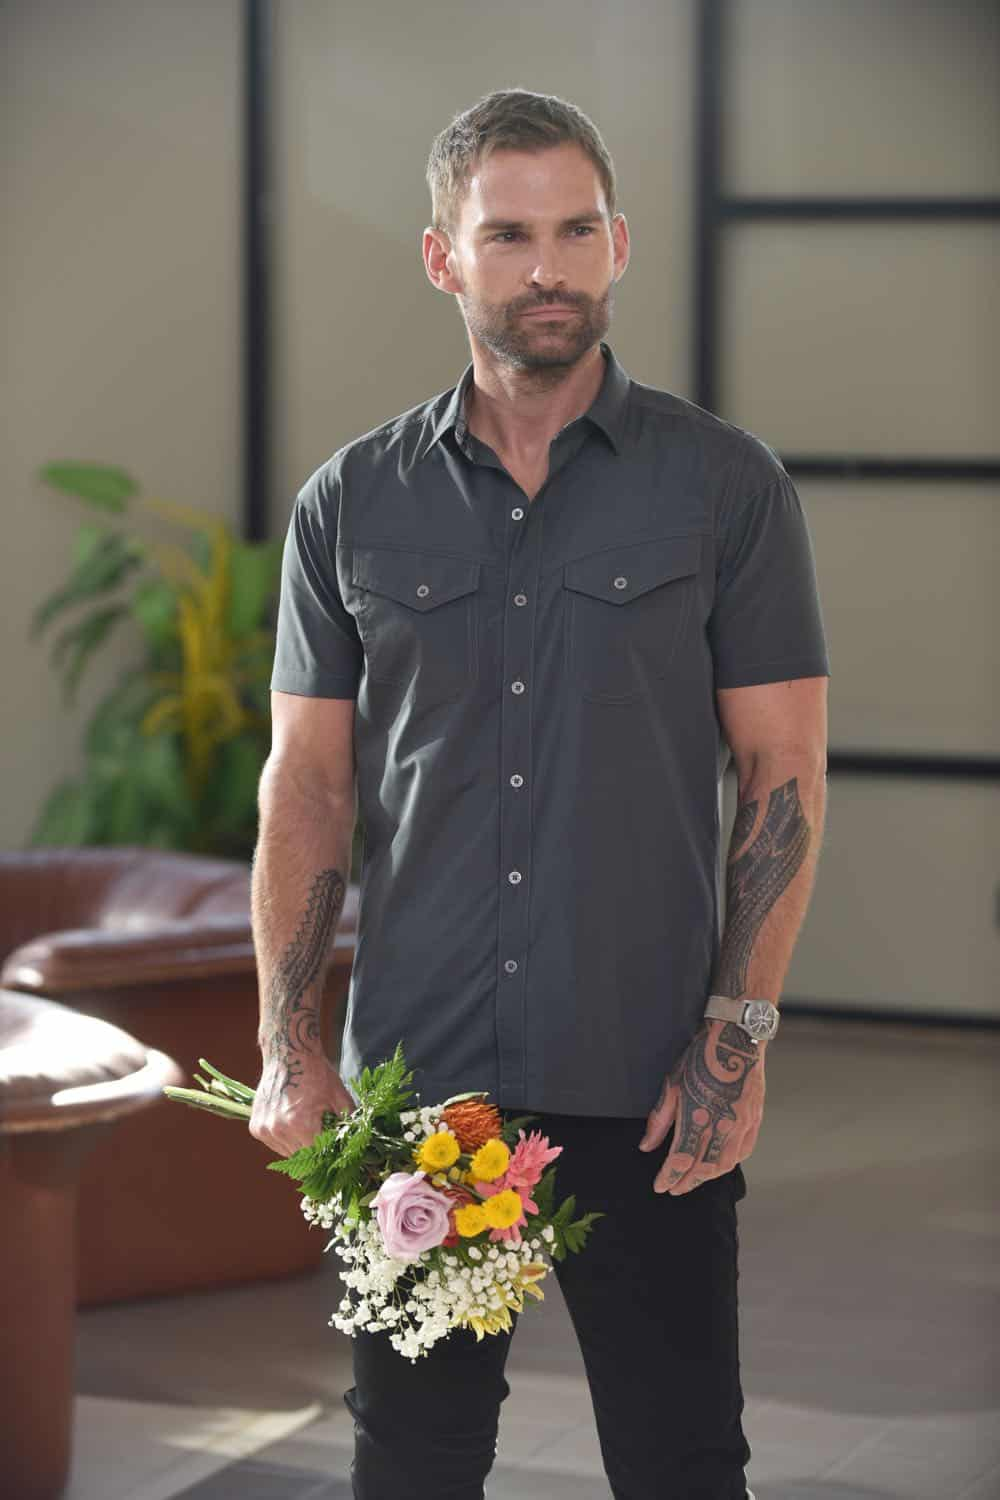 """LETHAL WEAPON: Seann William Scott in the """"In The Same Boat"""" season premiere episode of LETHAL WEAPON airing Tuesday, September 25 (9:00-10:00 PM ET/PT) on FOX. ©2018 Fox Broadcasting Co. CR: Ray Mickshaw/FOX"""